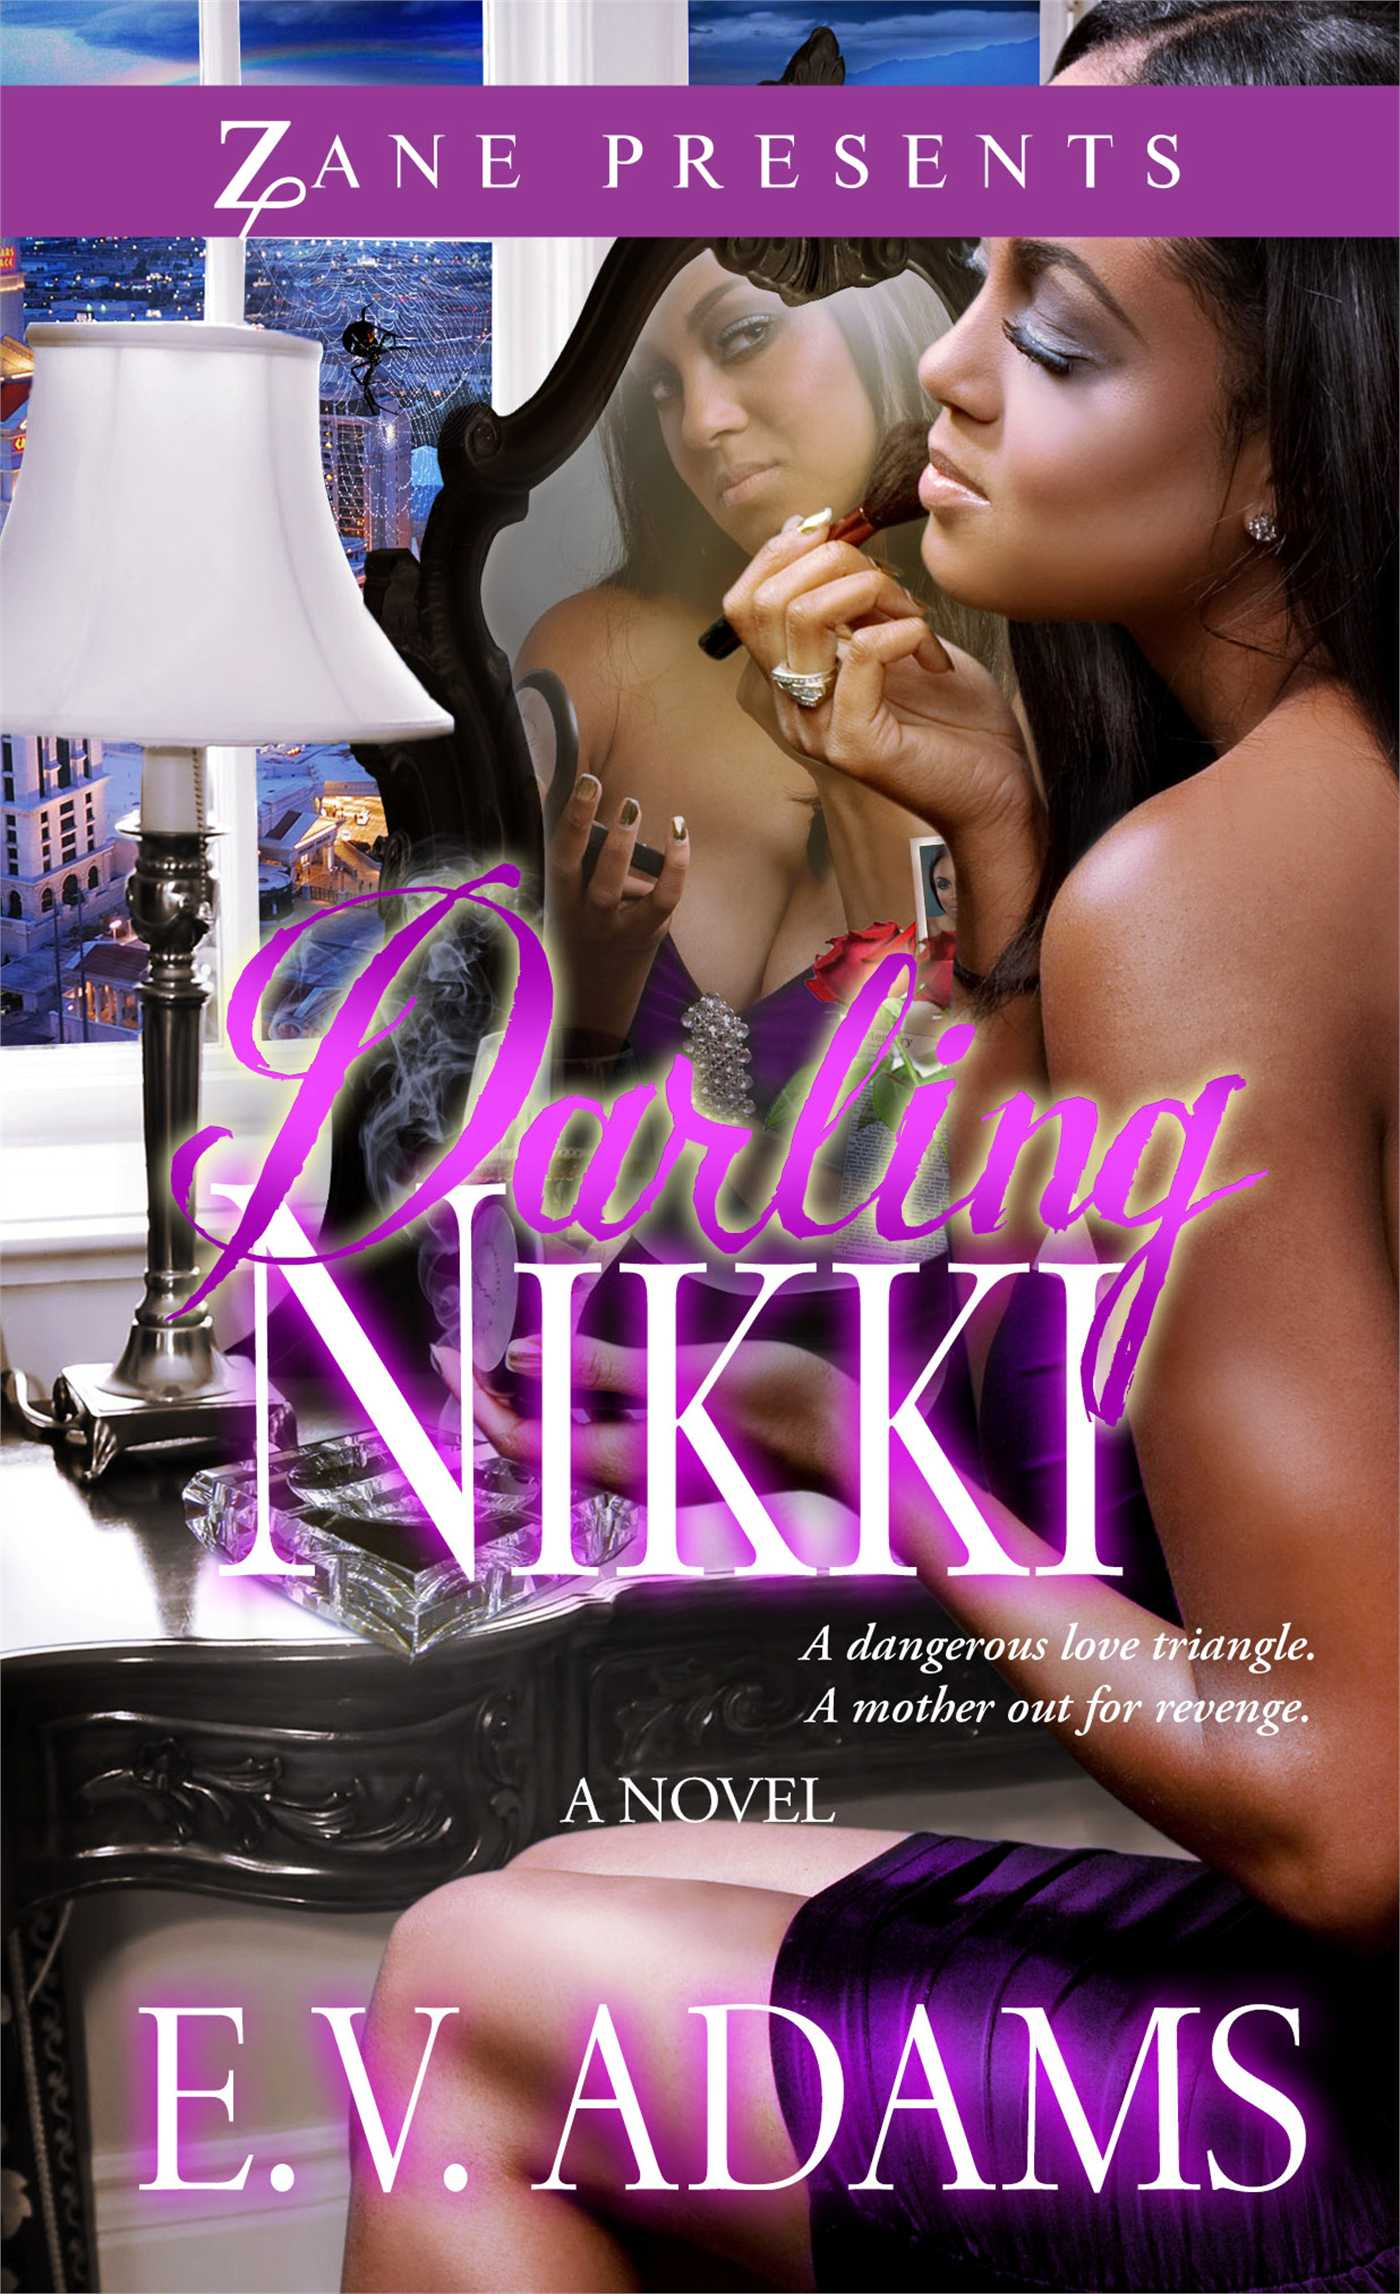 Darling nikki 9781593093945 hr